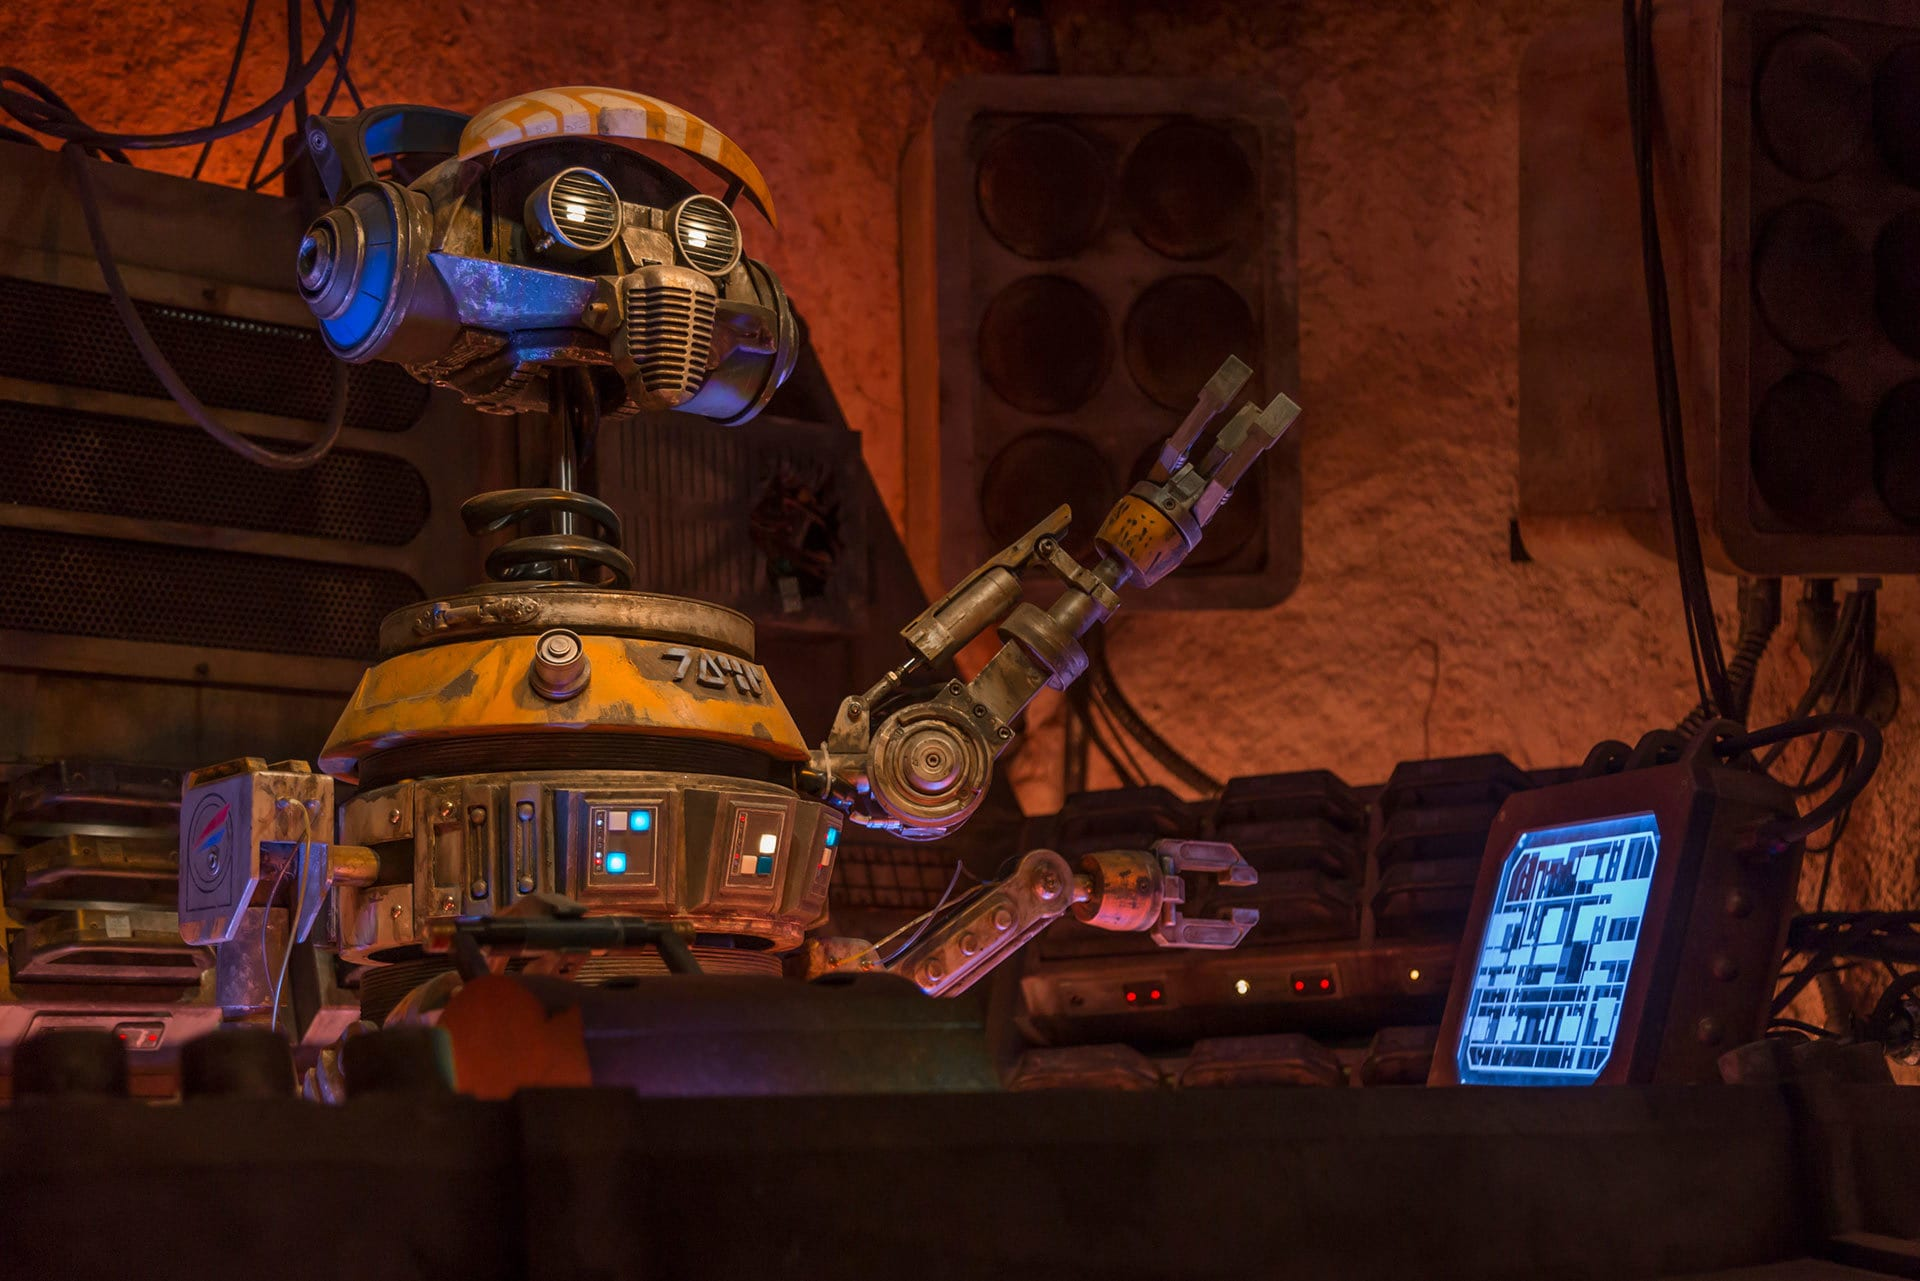 At Black Spire Outpost, the droid in charge of music at the local watering hole, Oga's Cantina, is DJ R-3X, the former Starspeeder 3000 pilot from Star Tours.